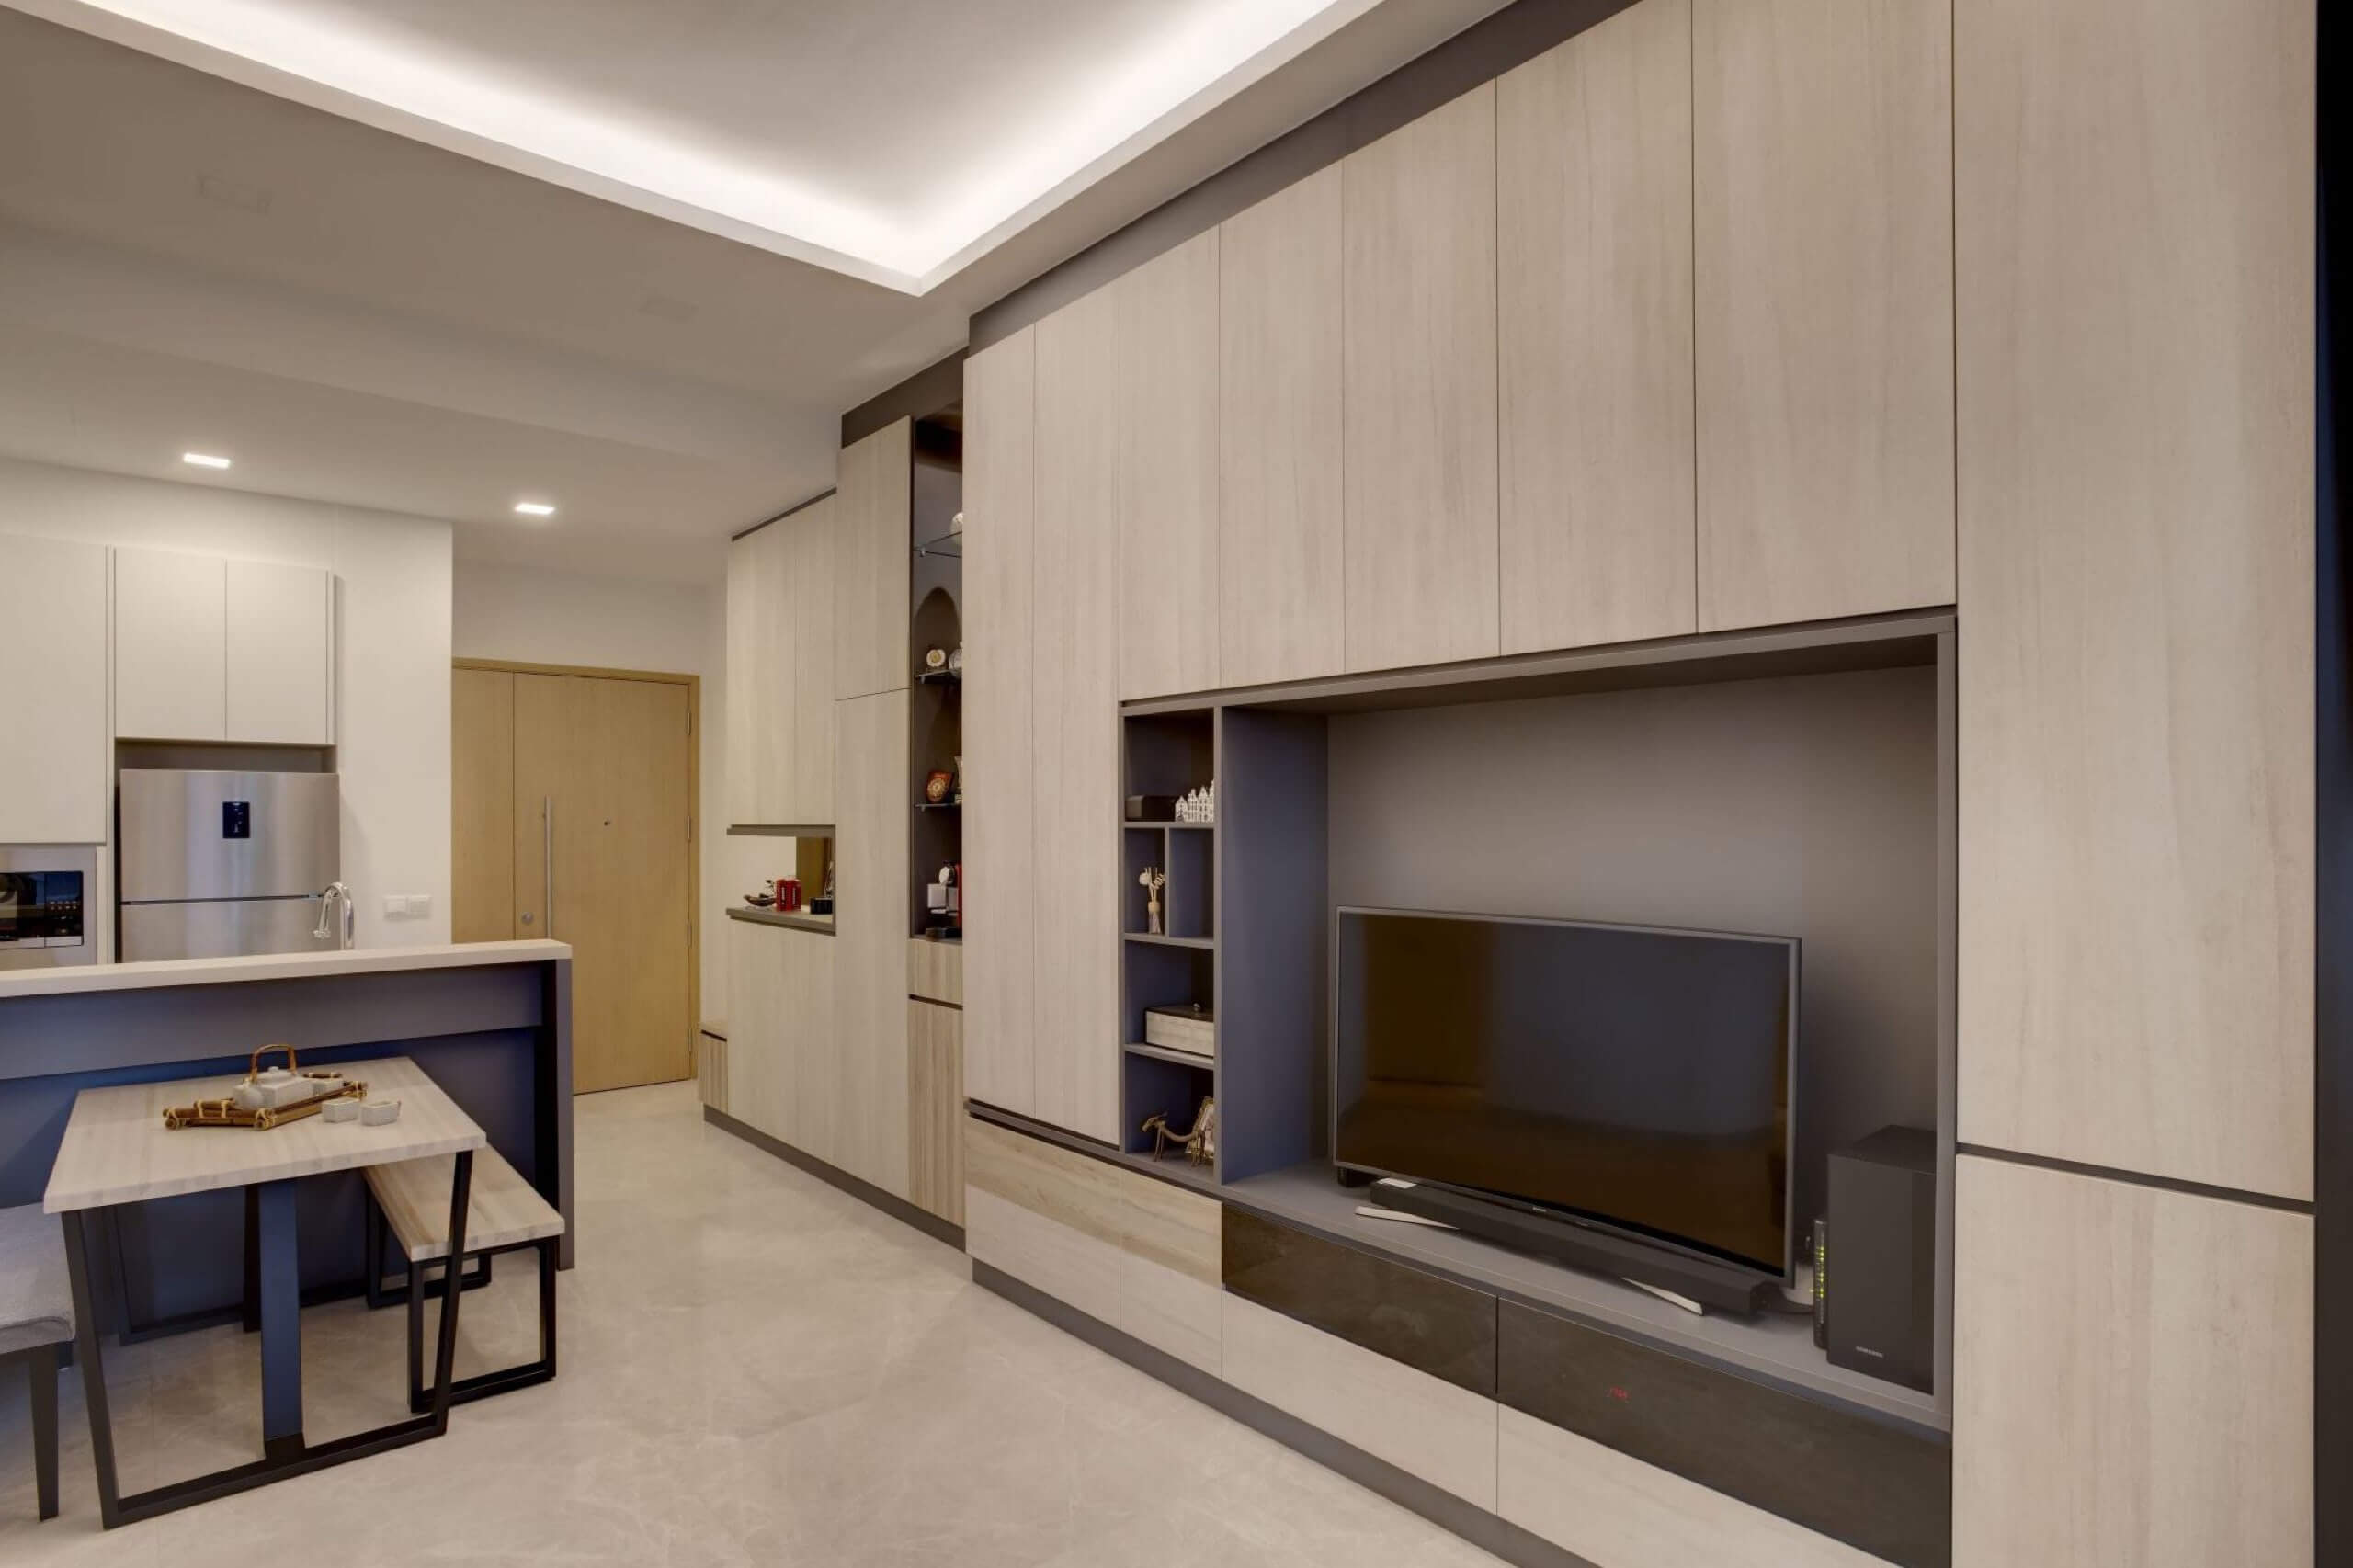 residential-project-in-the-mood-to-dream-bedroom-design-featured